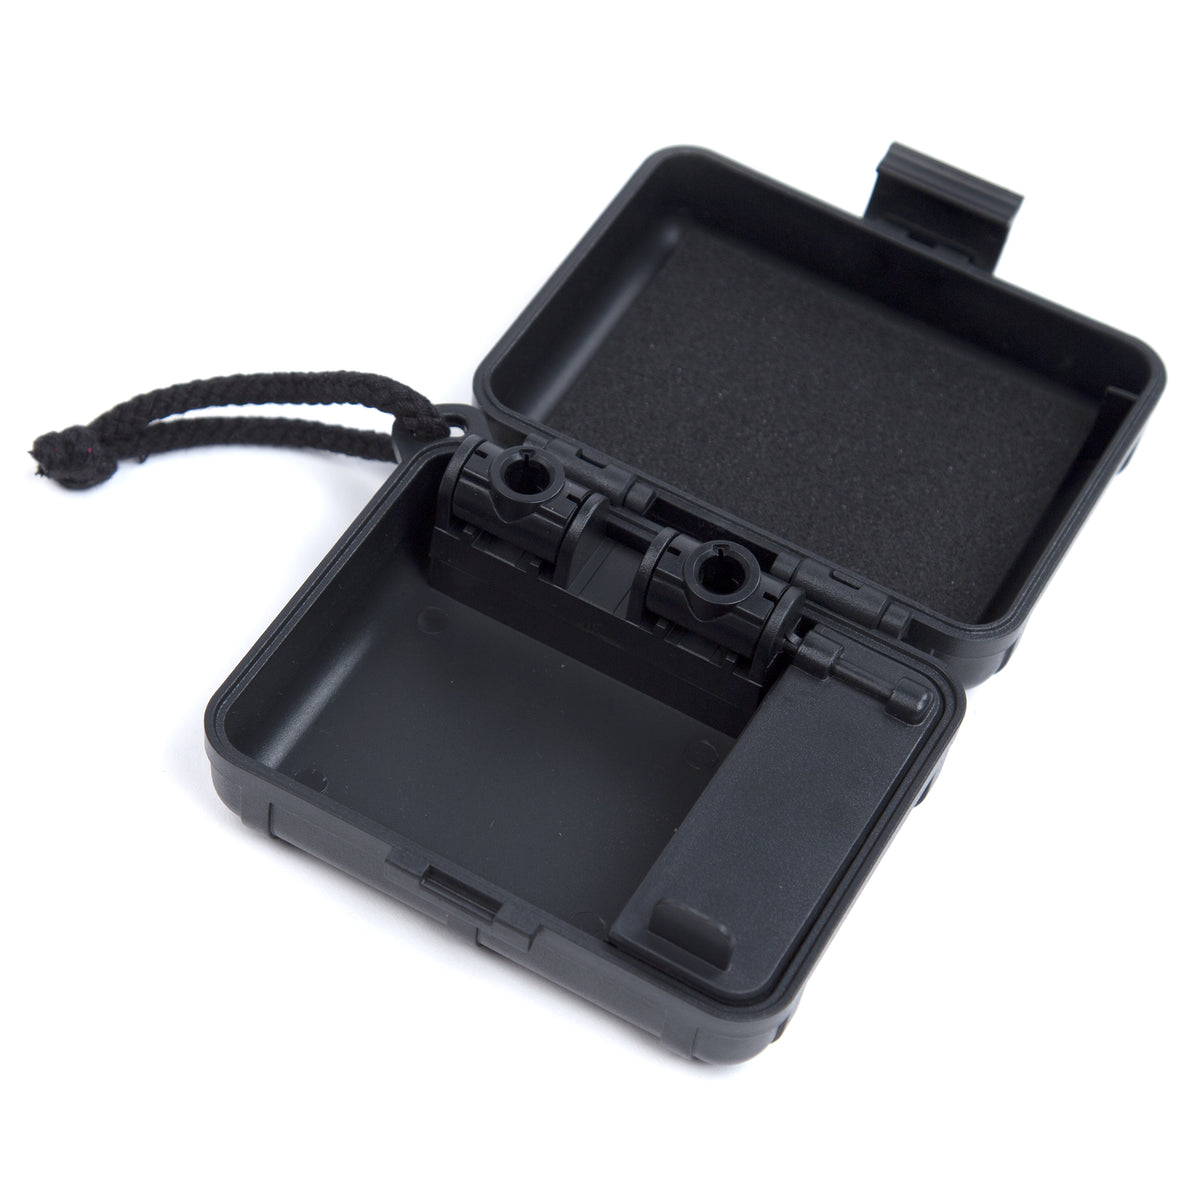 Stokyo: Black Box Cartridge Case - Turntable Lab Edition